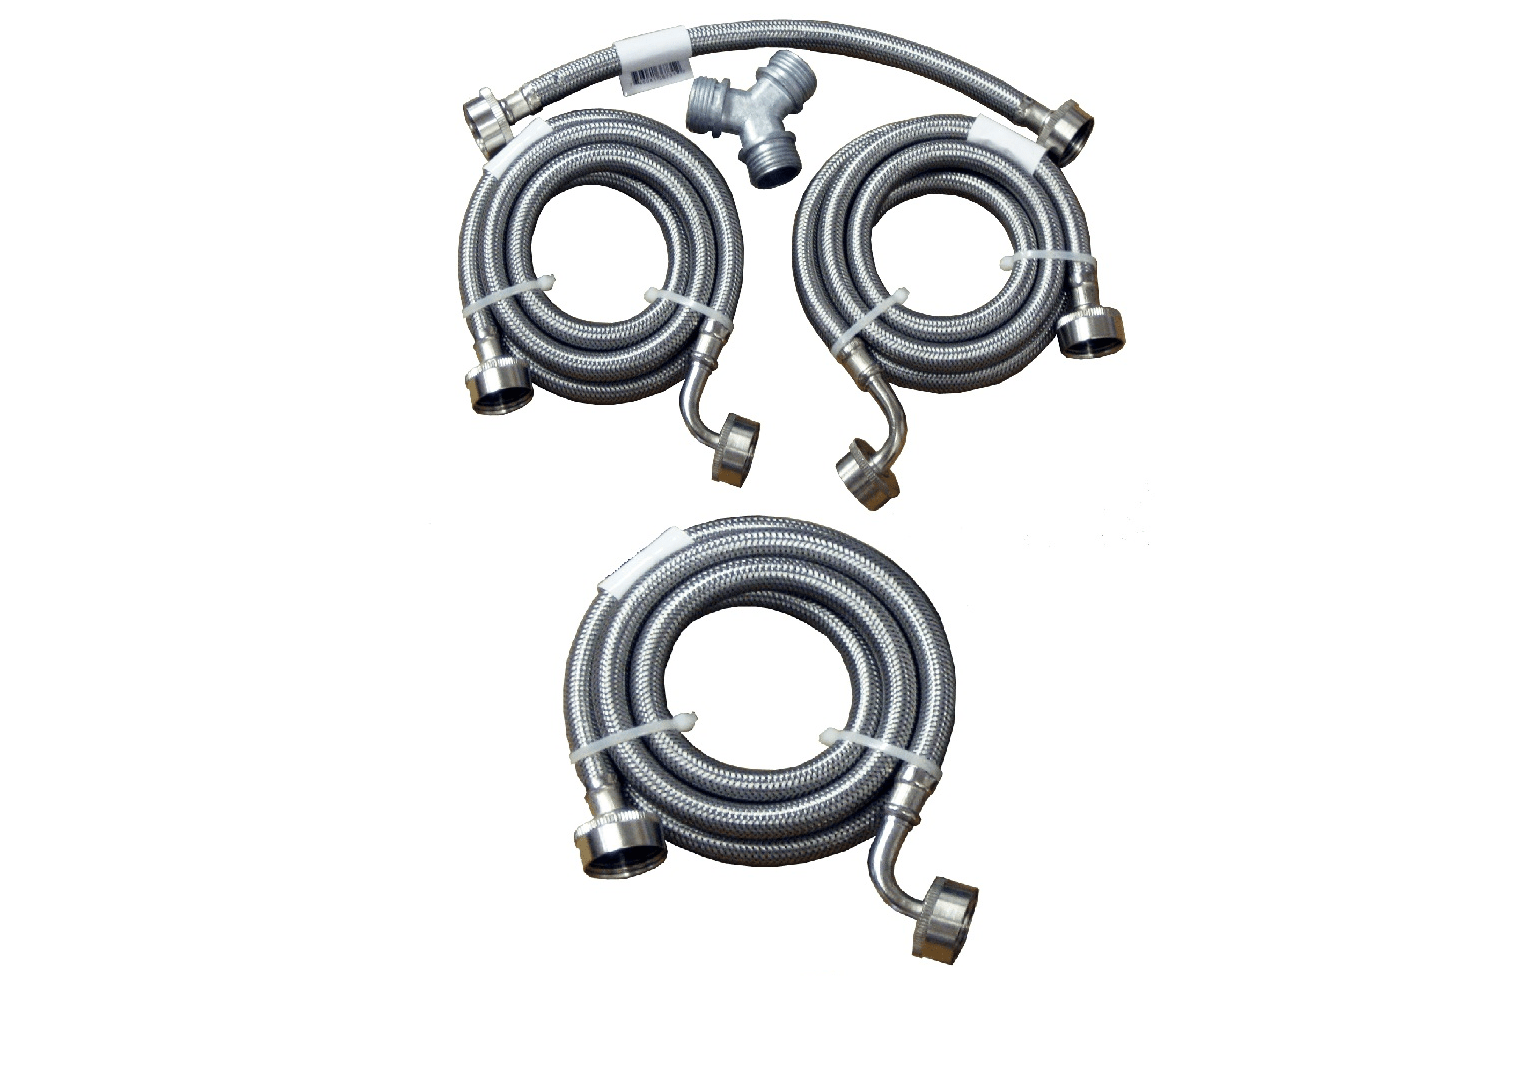 Ws5ss4stm Stainless Steel Steam Installation Kit Includes